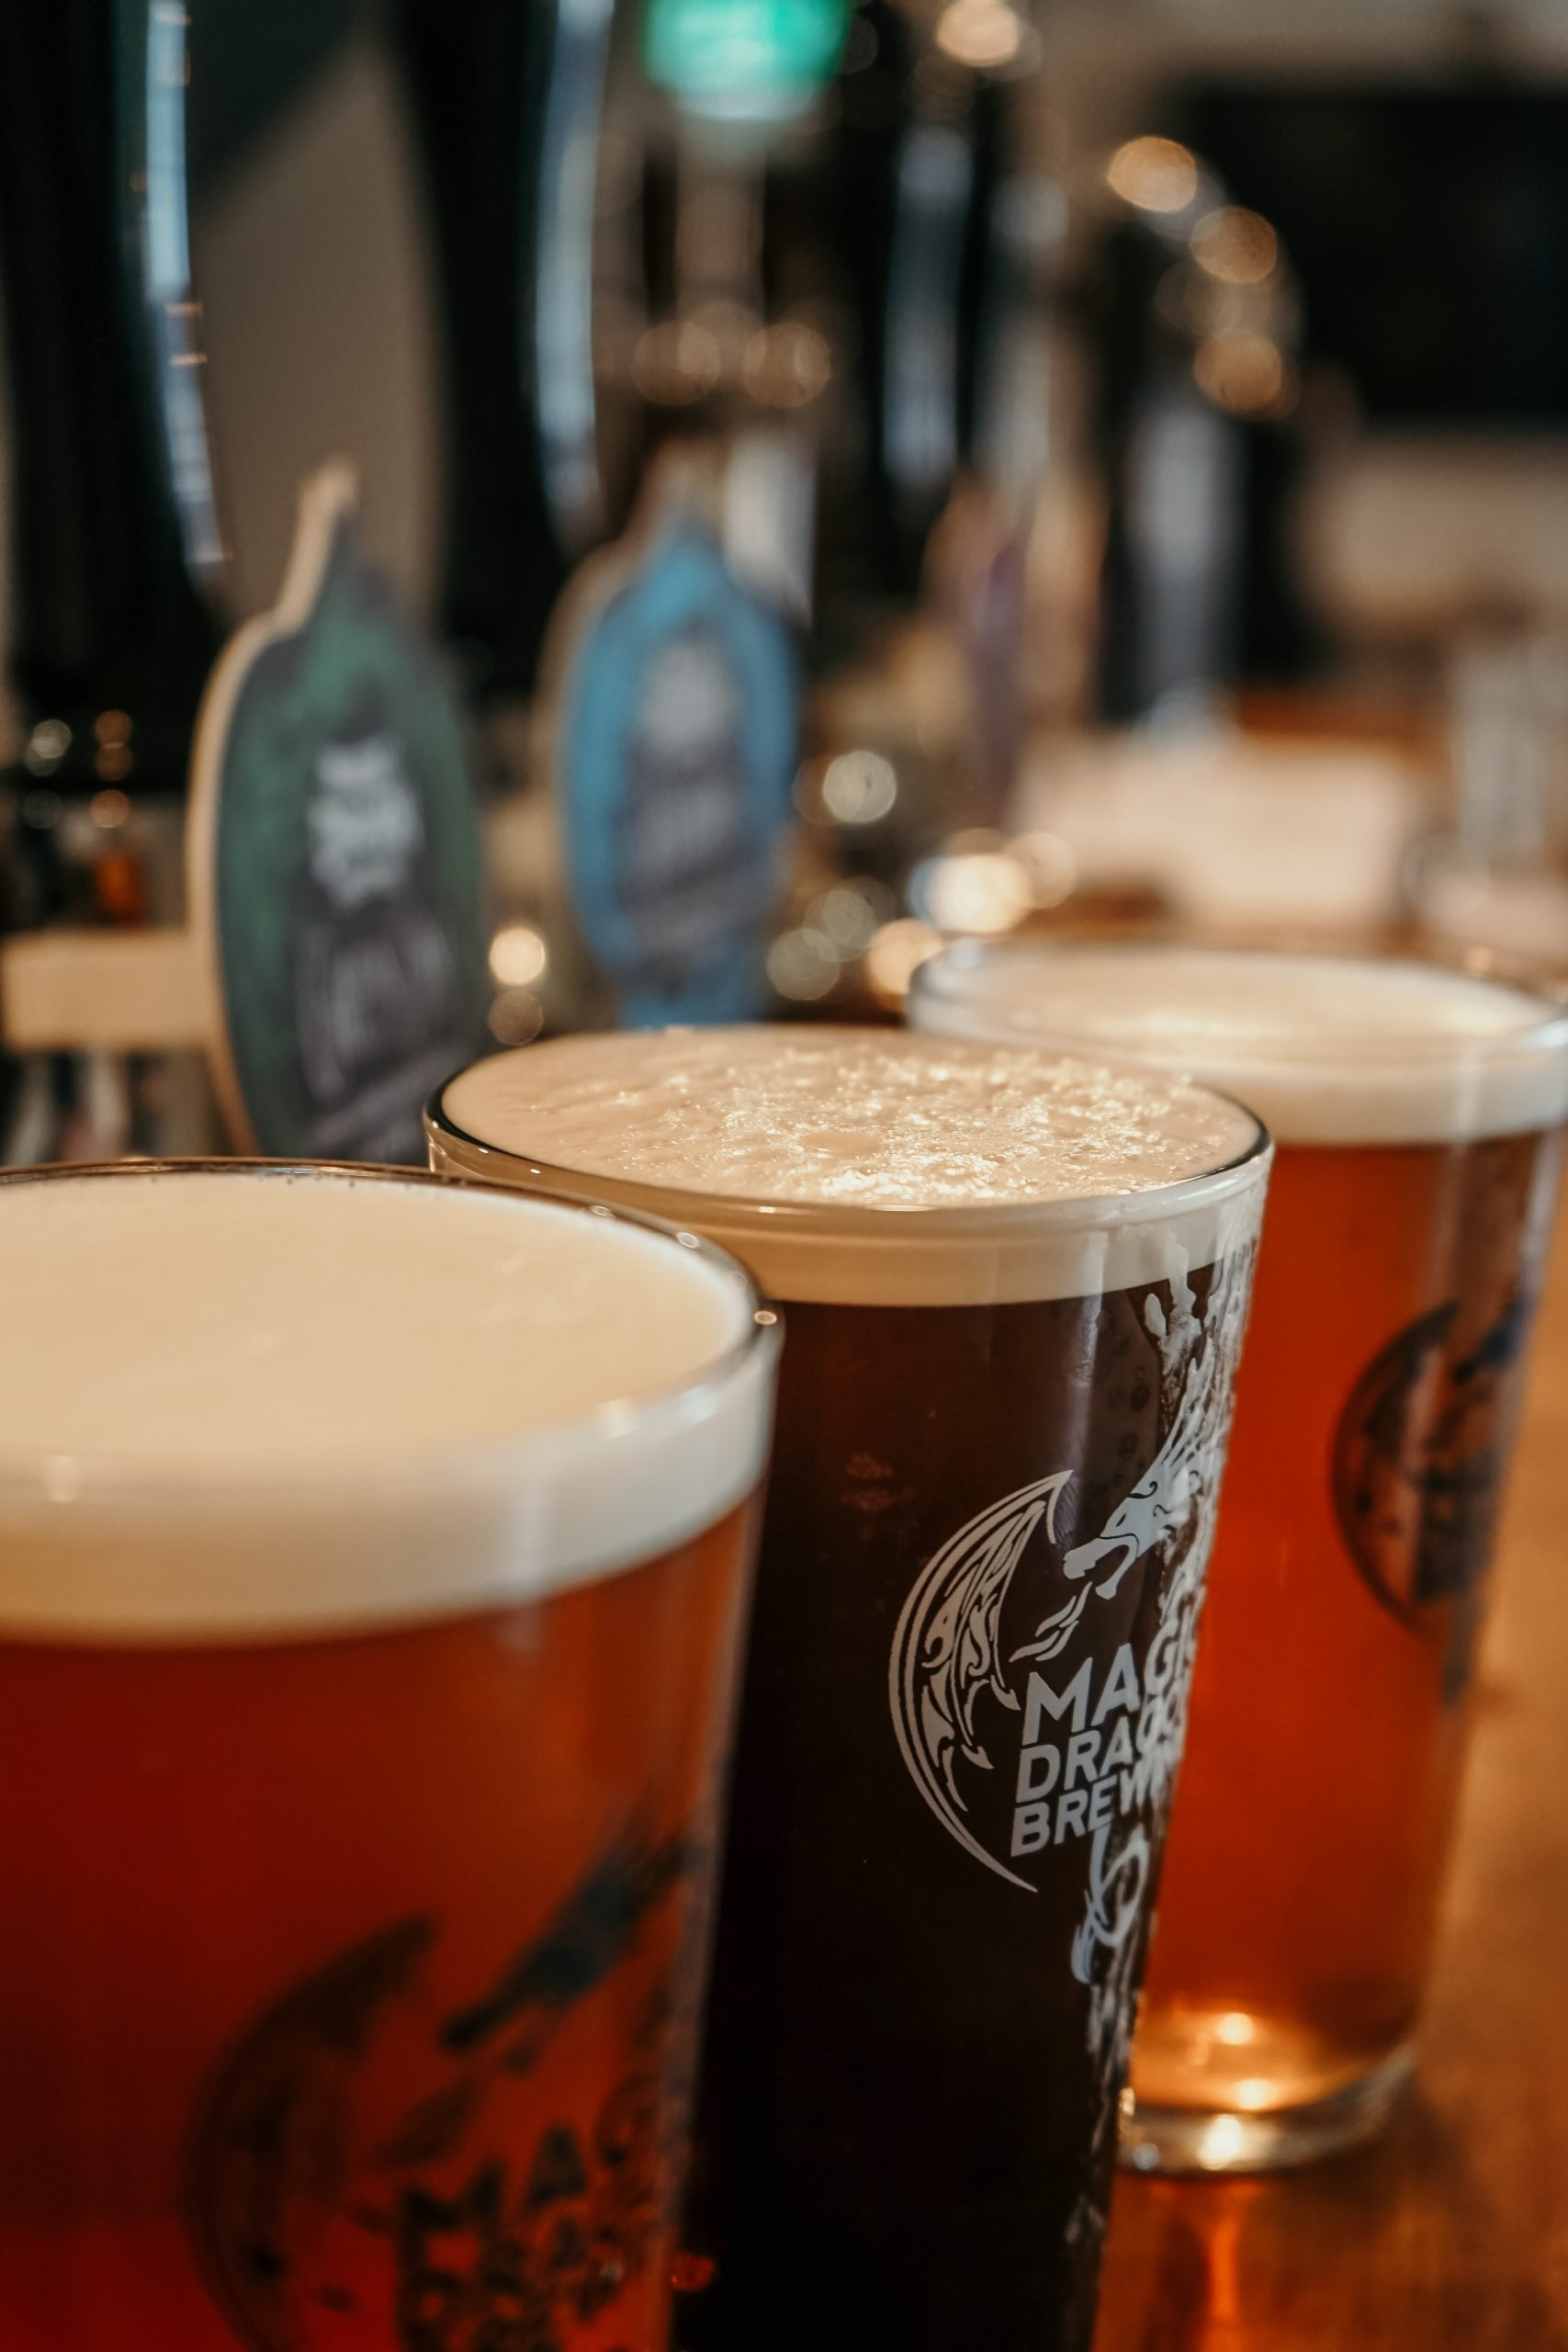 https://magicdragonbrewing.com/wp-content/uploads/2021/07/line-up-of-pints-scaled.jpg